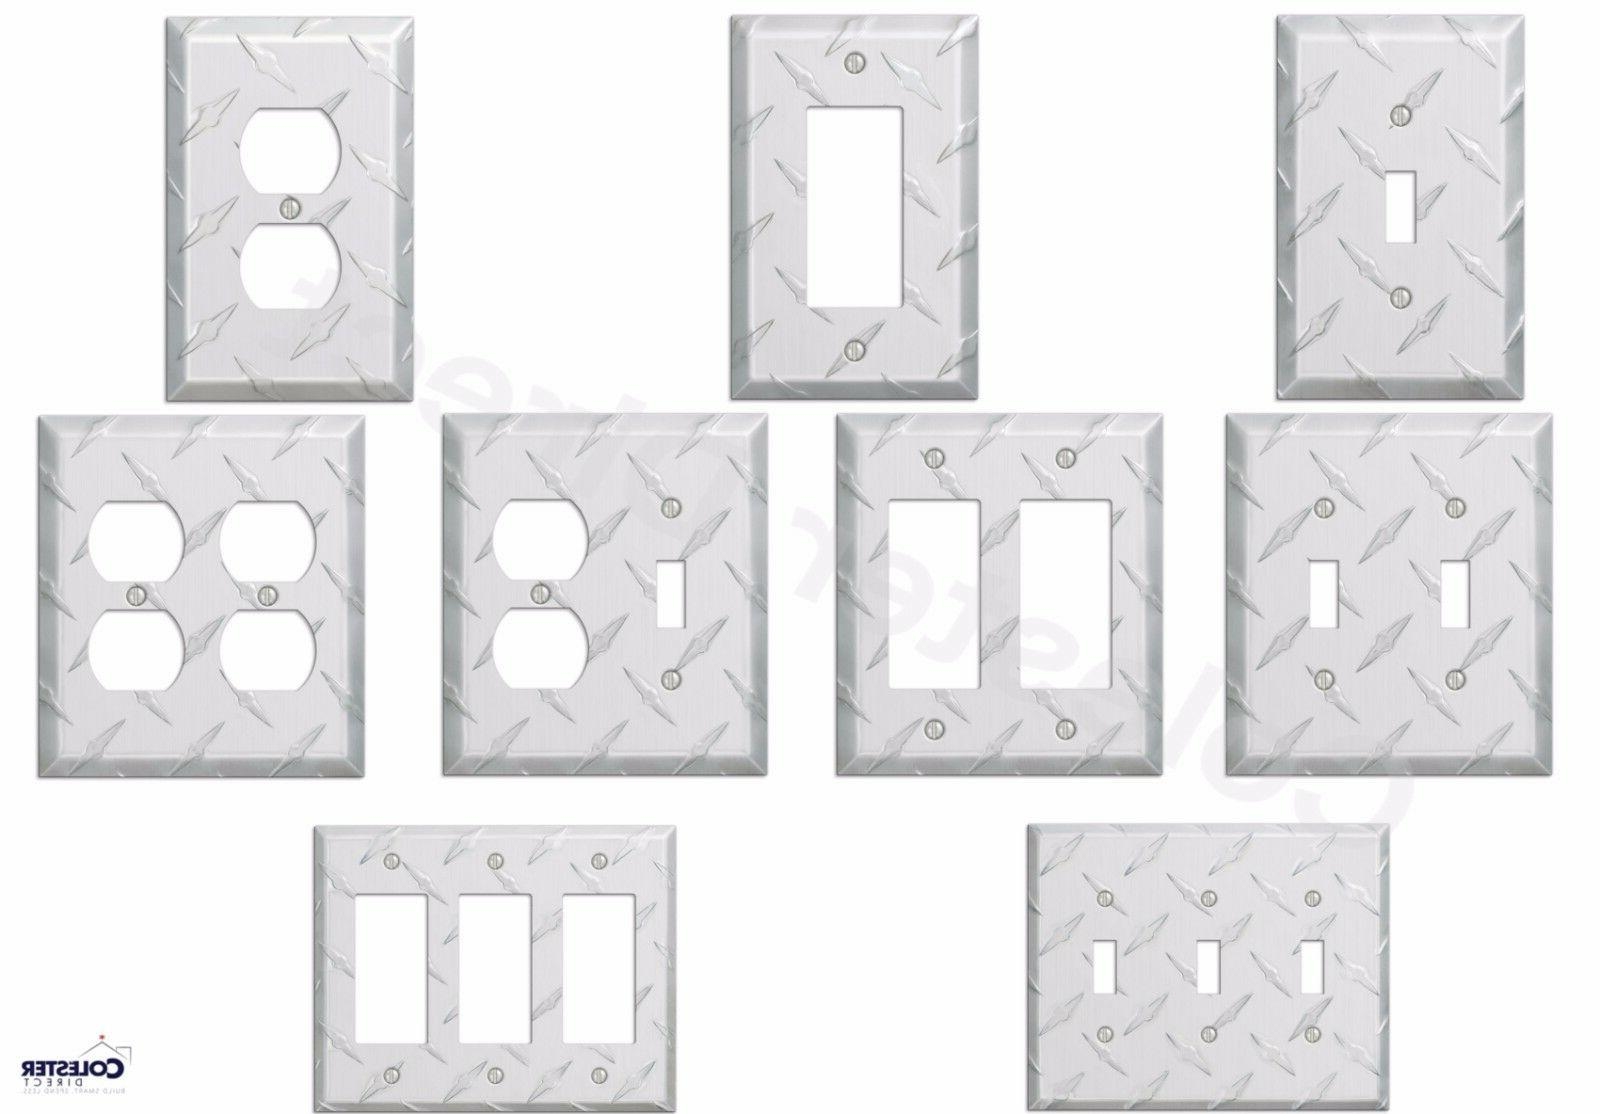 diamond plate aluminum wall switch plate outlet